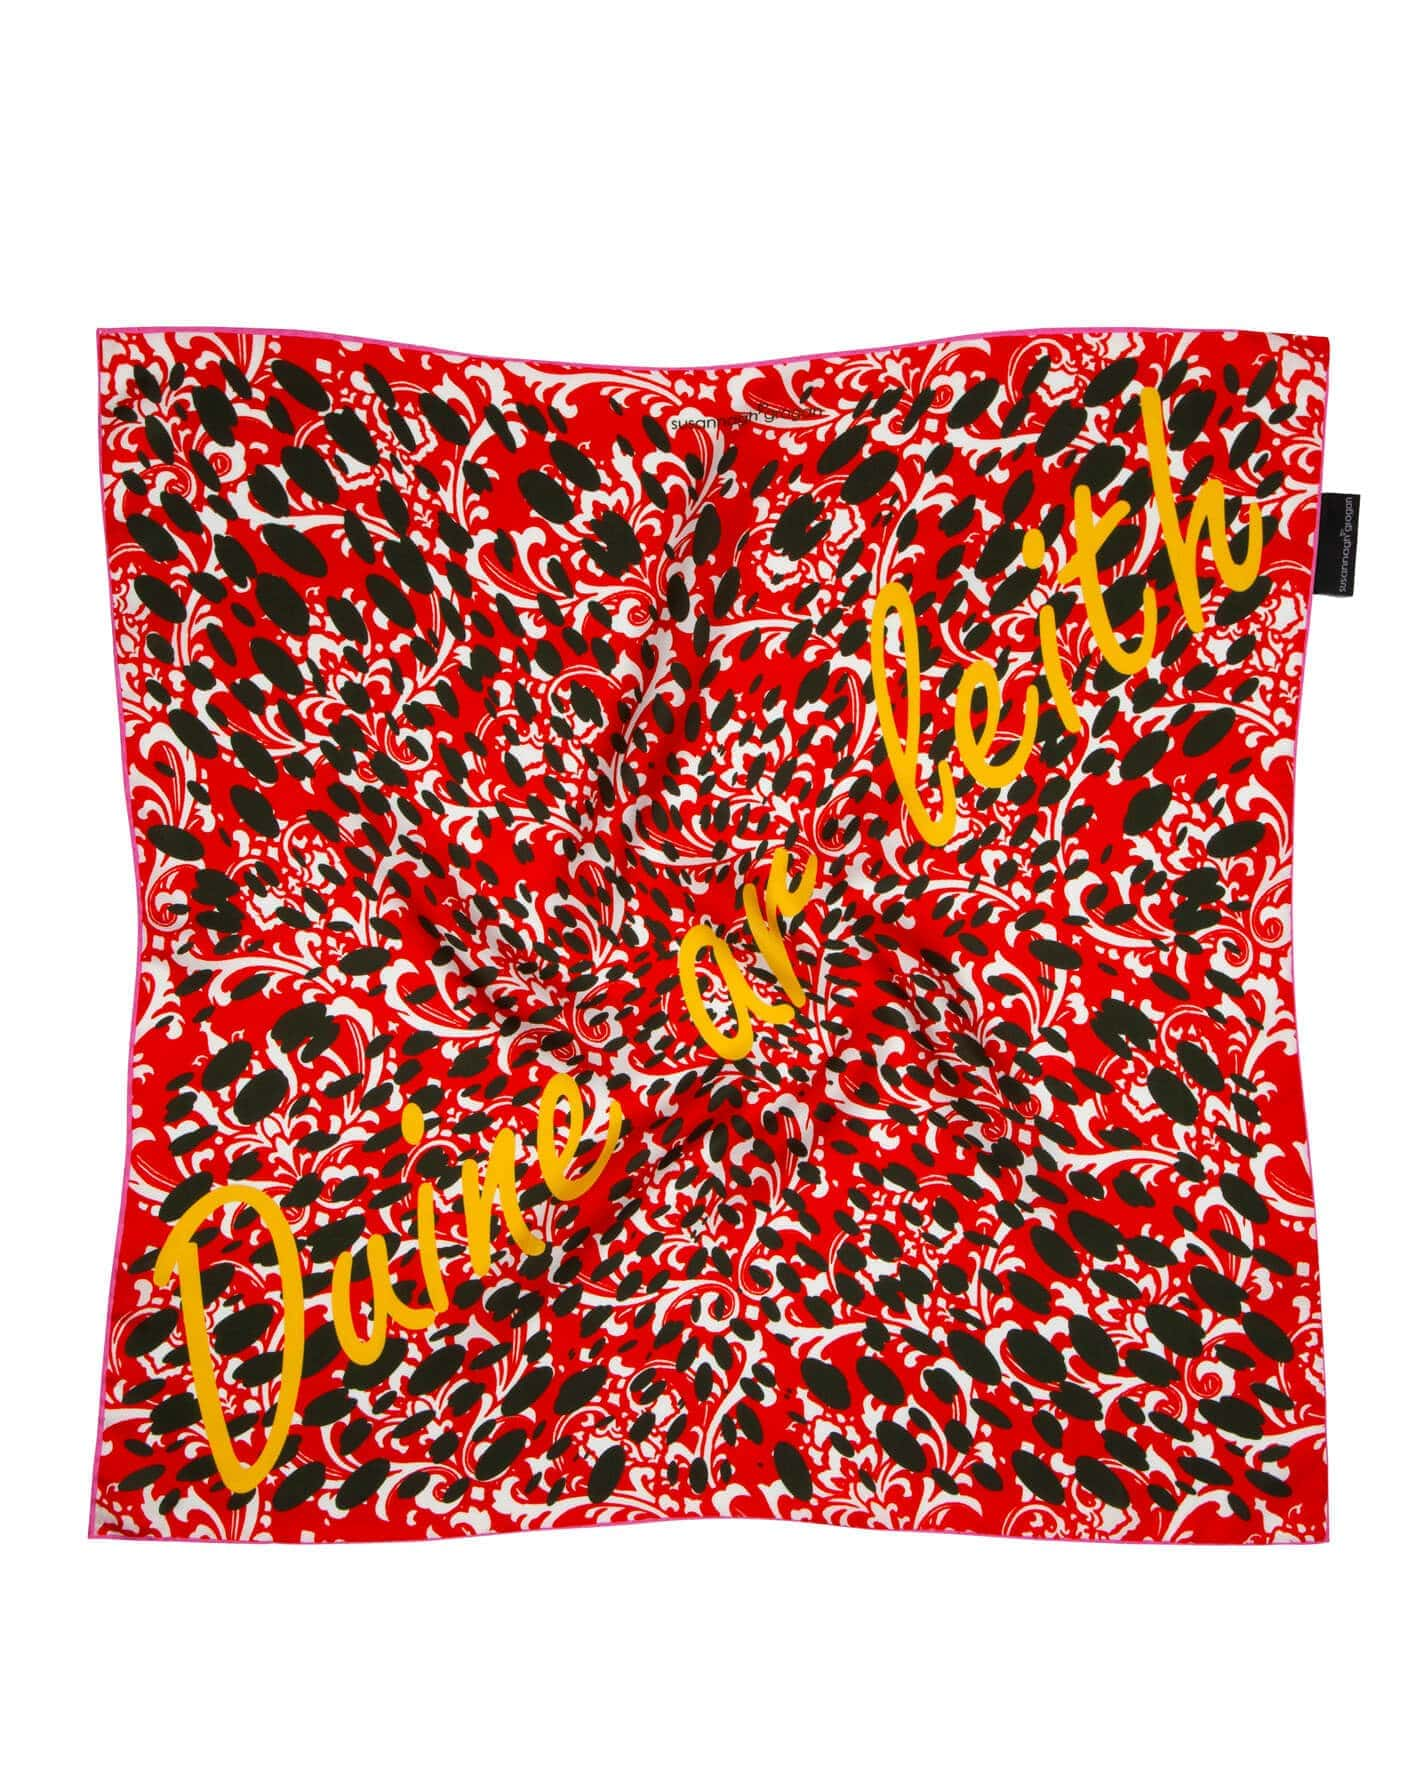 Boundless, Duine ar Leith Susannagh Grogan Silk Scarf Empowered Collection